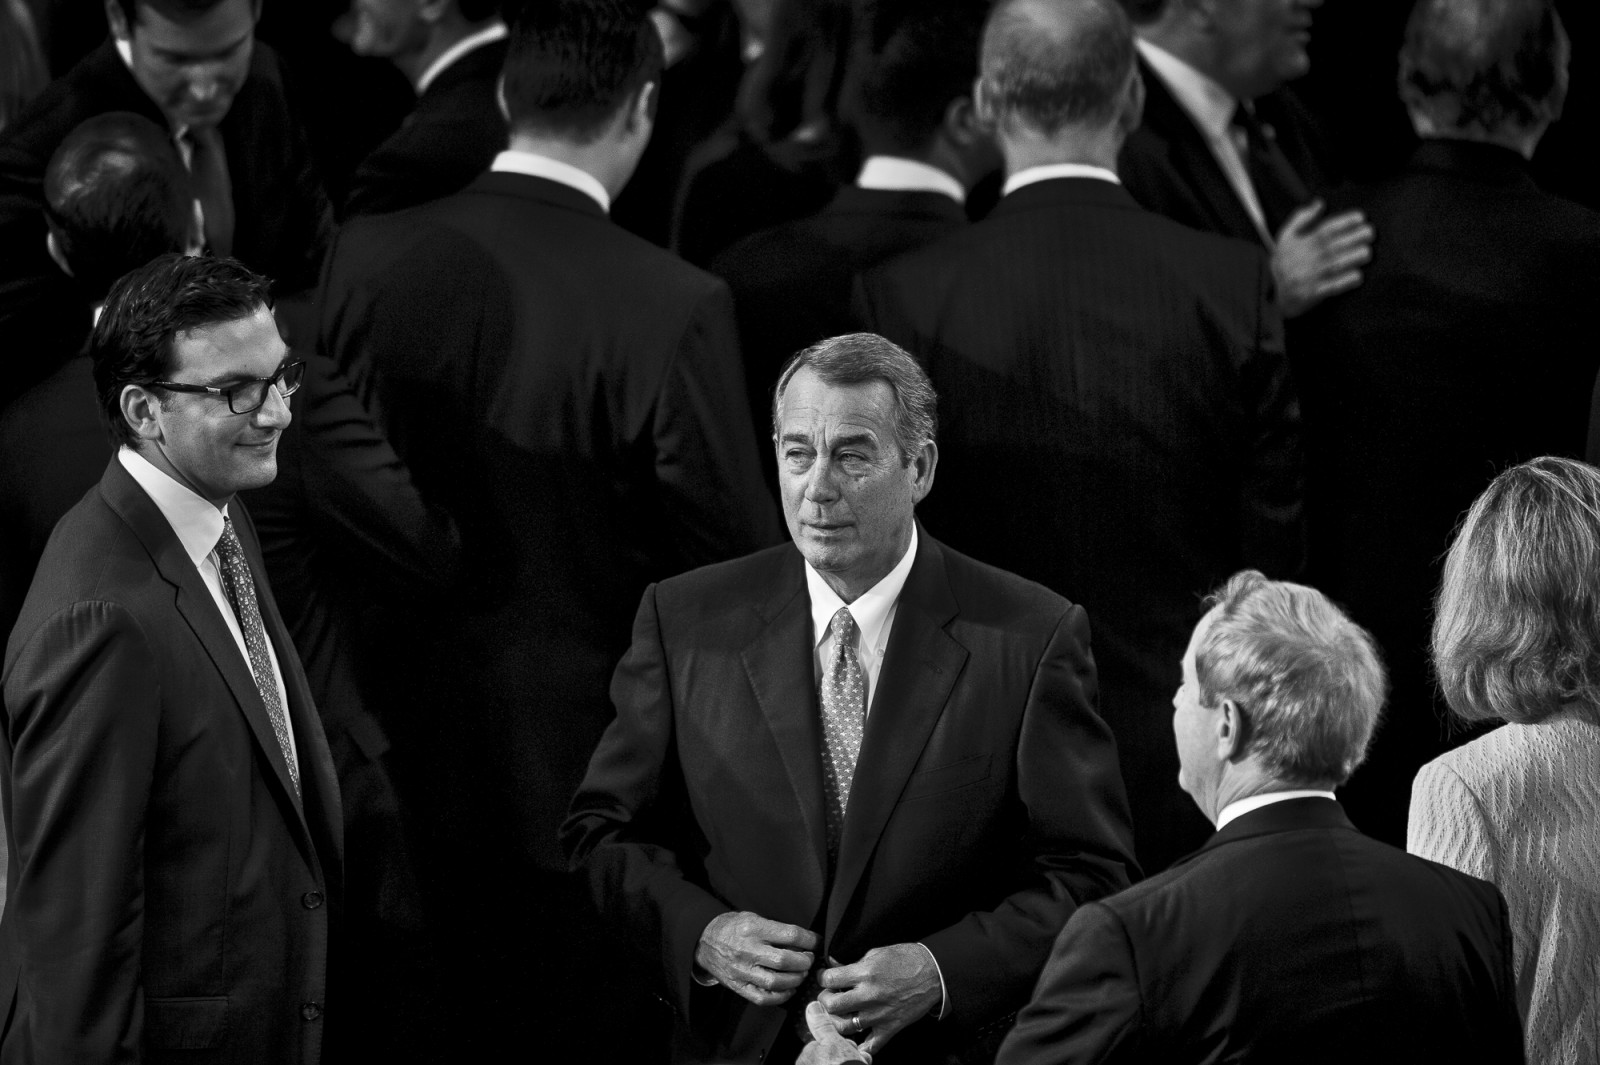 The day before he is to retire from Congress, Speaker of the House John Boehner (R-OH) prepares to deliver his farewell address to the House of Representatives on October 29, 2015 in Washington, D.C. Following his address, the House of Representatives will vote on Boehner's replacement for Speaker. Photo by Pete Marovich/UPI